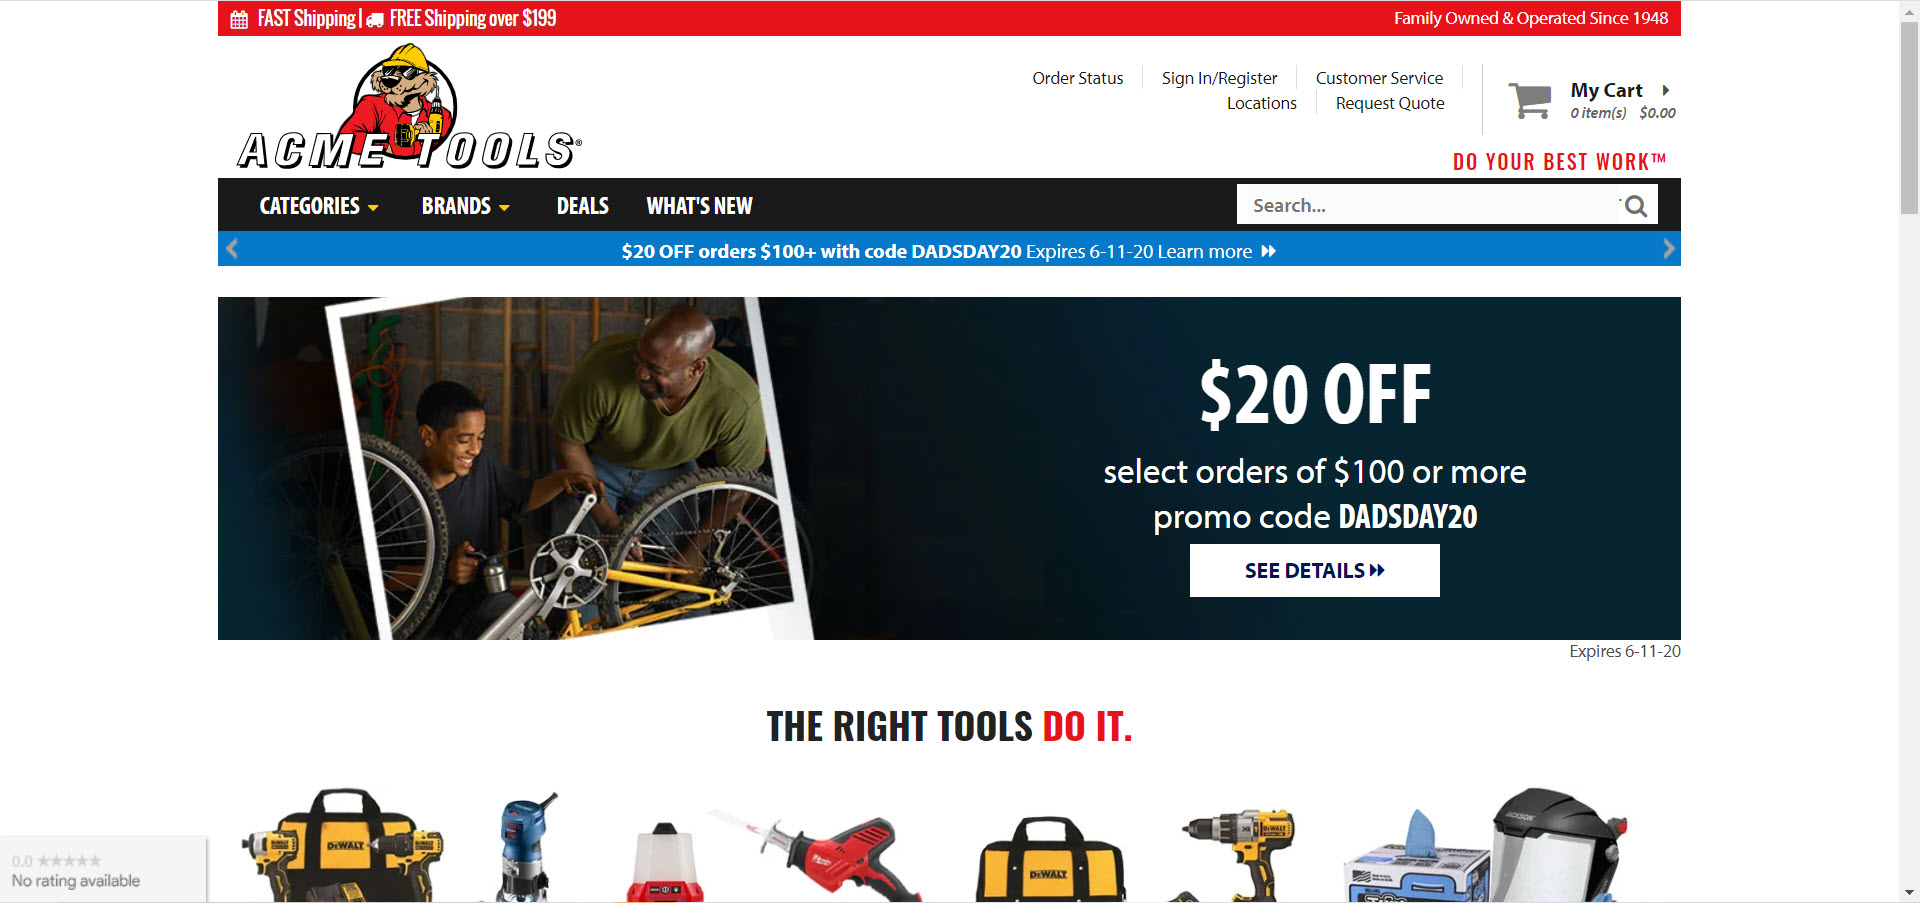 Power tools affiliate programs - ACME tools